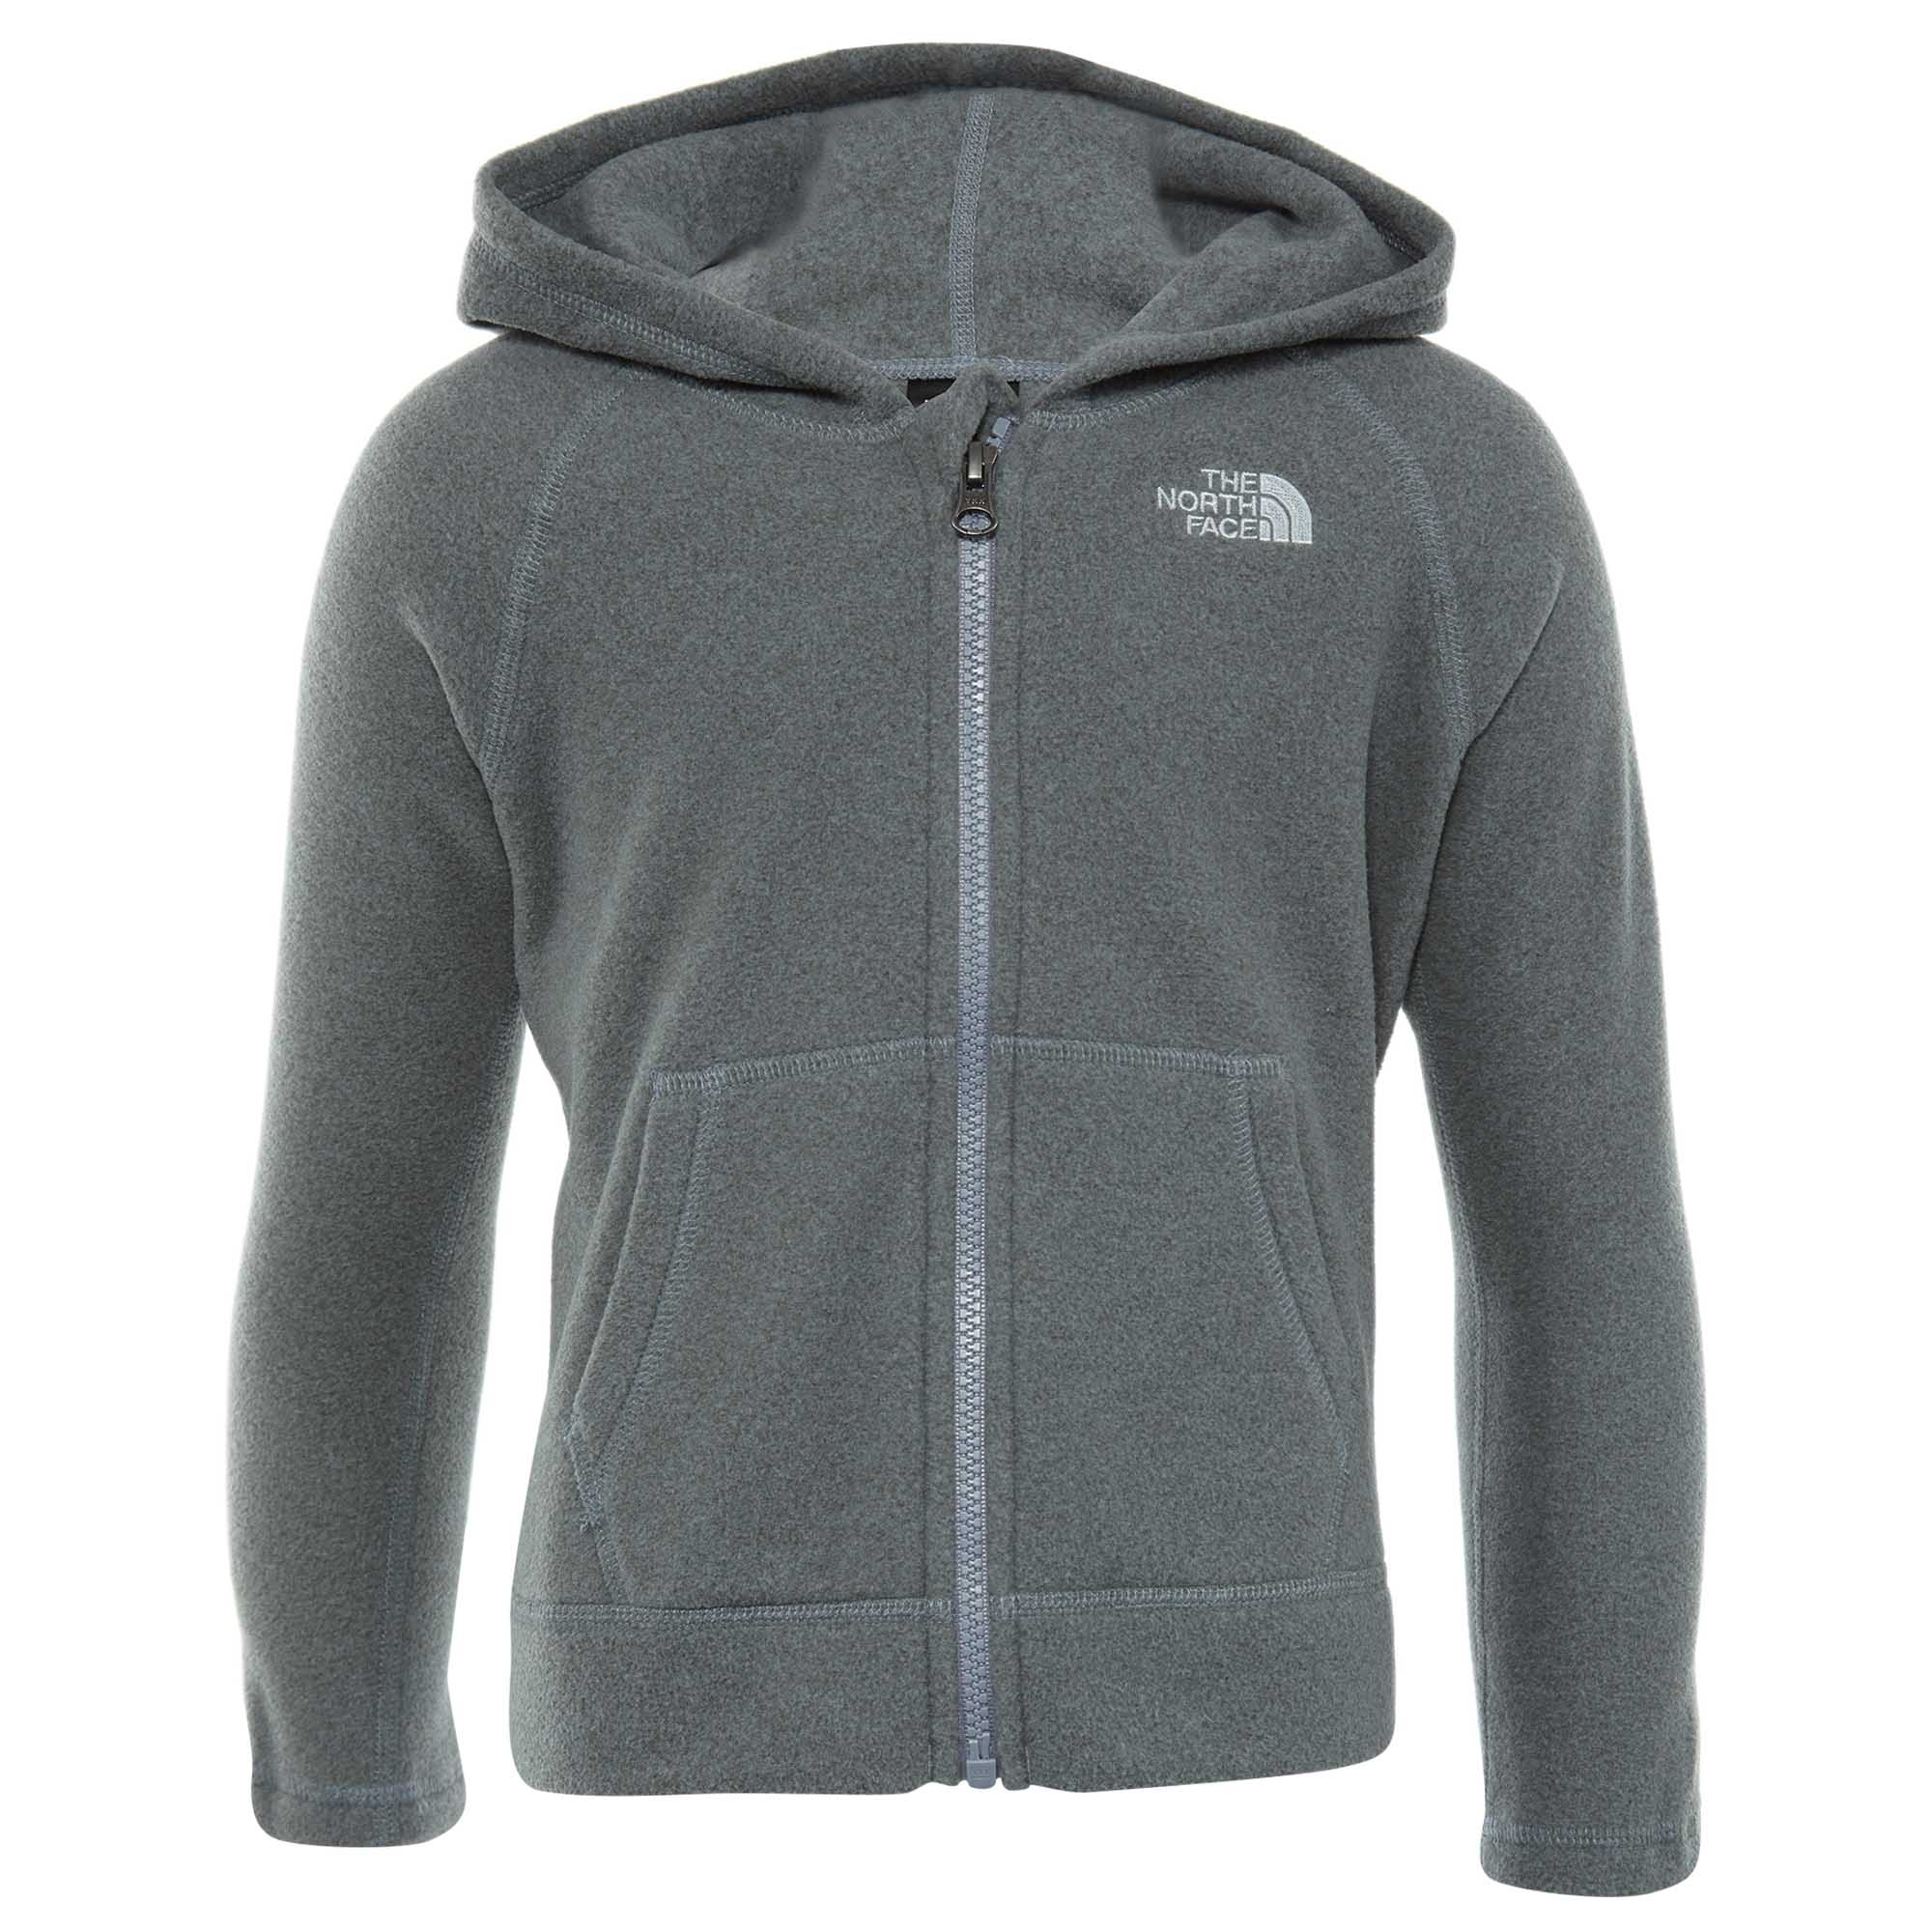 ed64b08d09ca2 Details about The North Face Toddlers Glacier Full Zip Hoodie A34WA-WCG